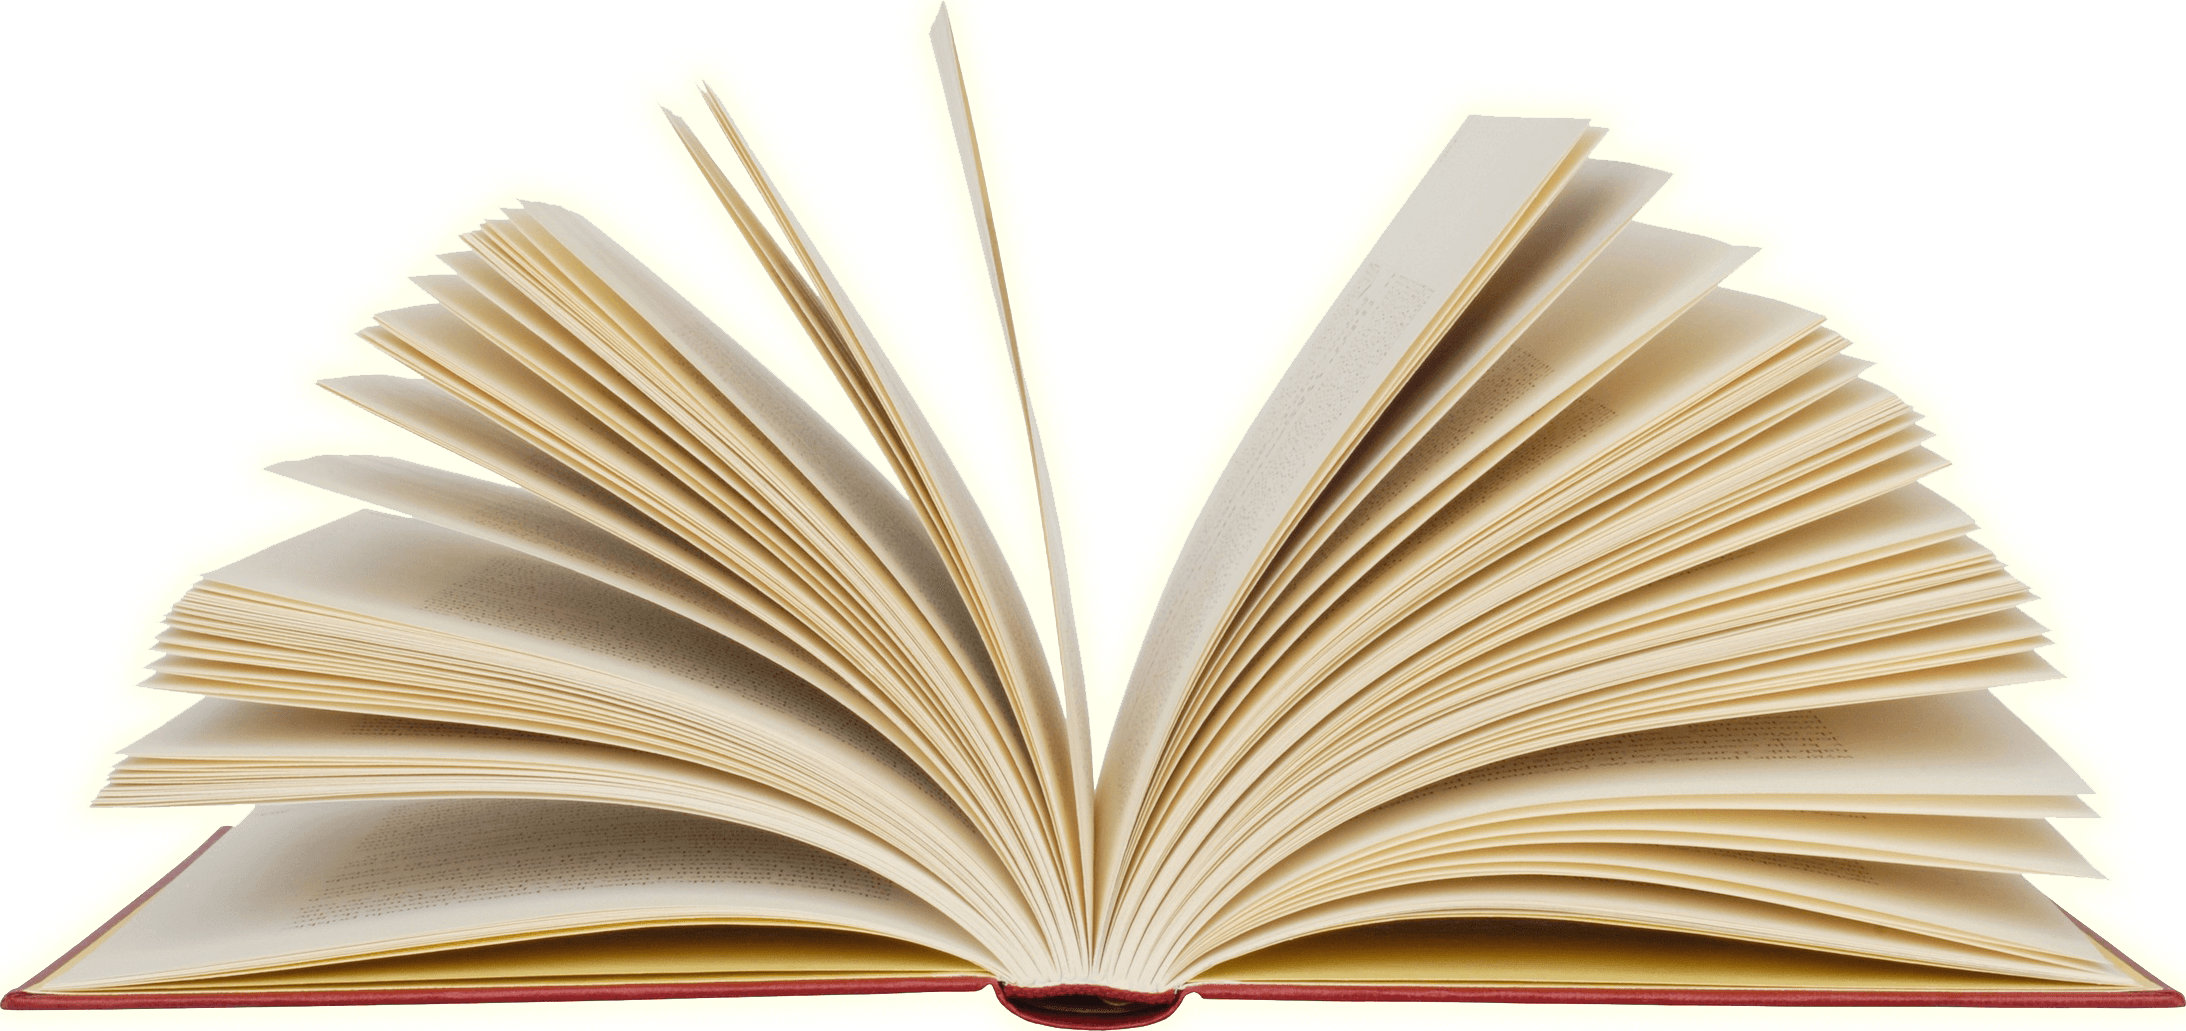 7 open book png image